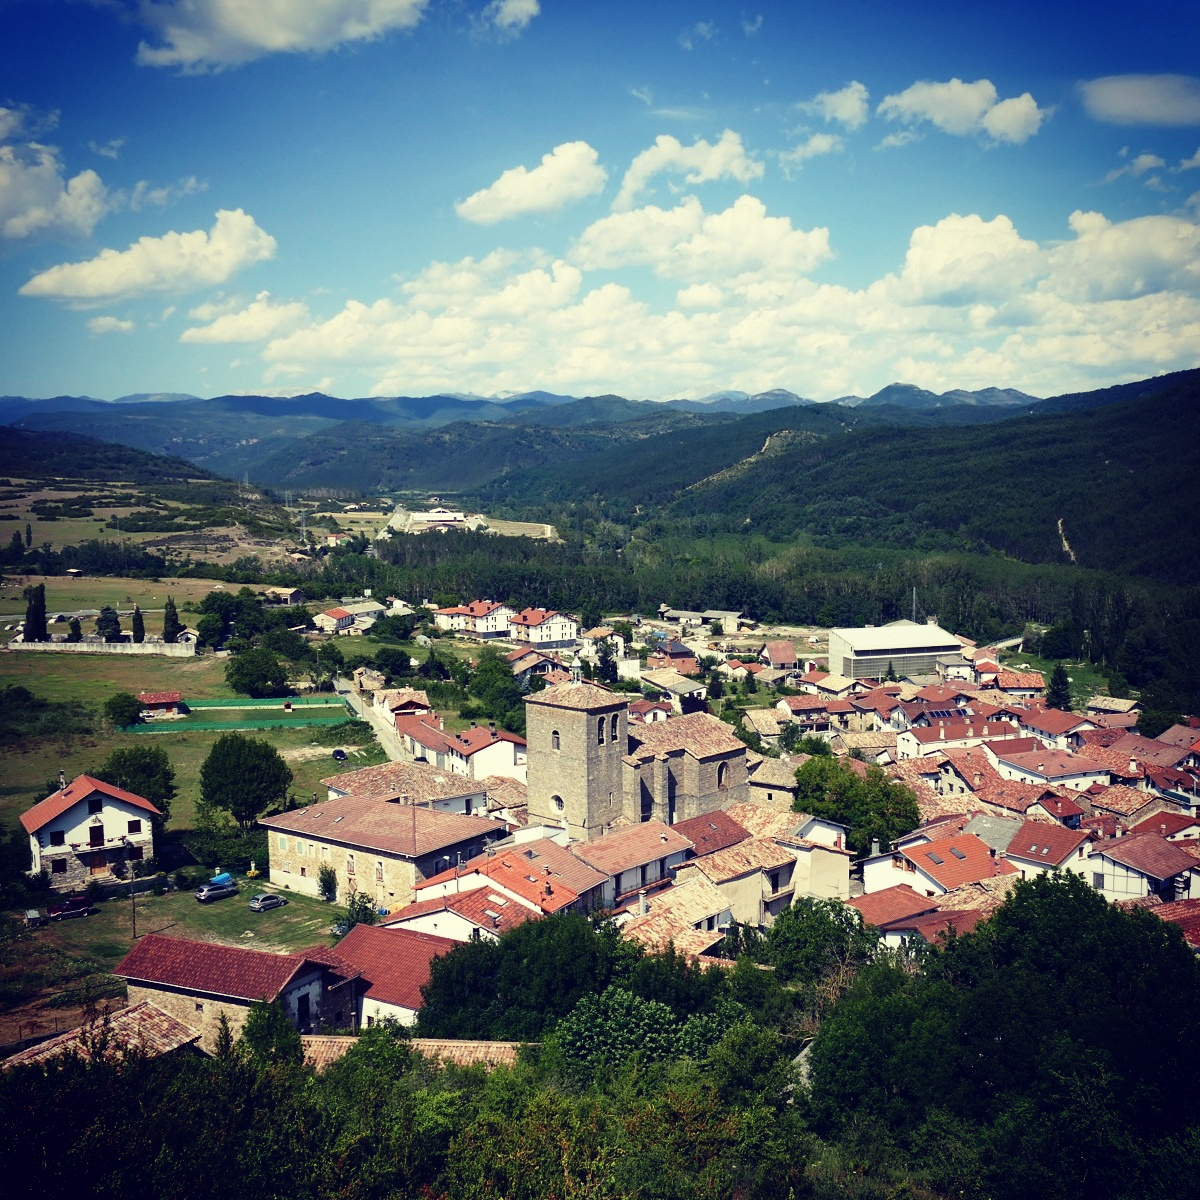 A postcard-perfect alpine village in the Spanish Pyrenees. Noah Strycker